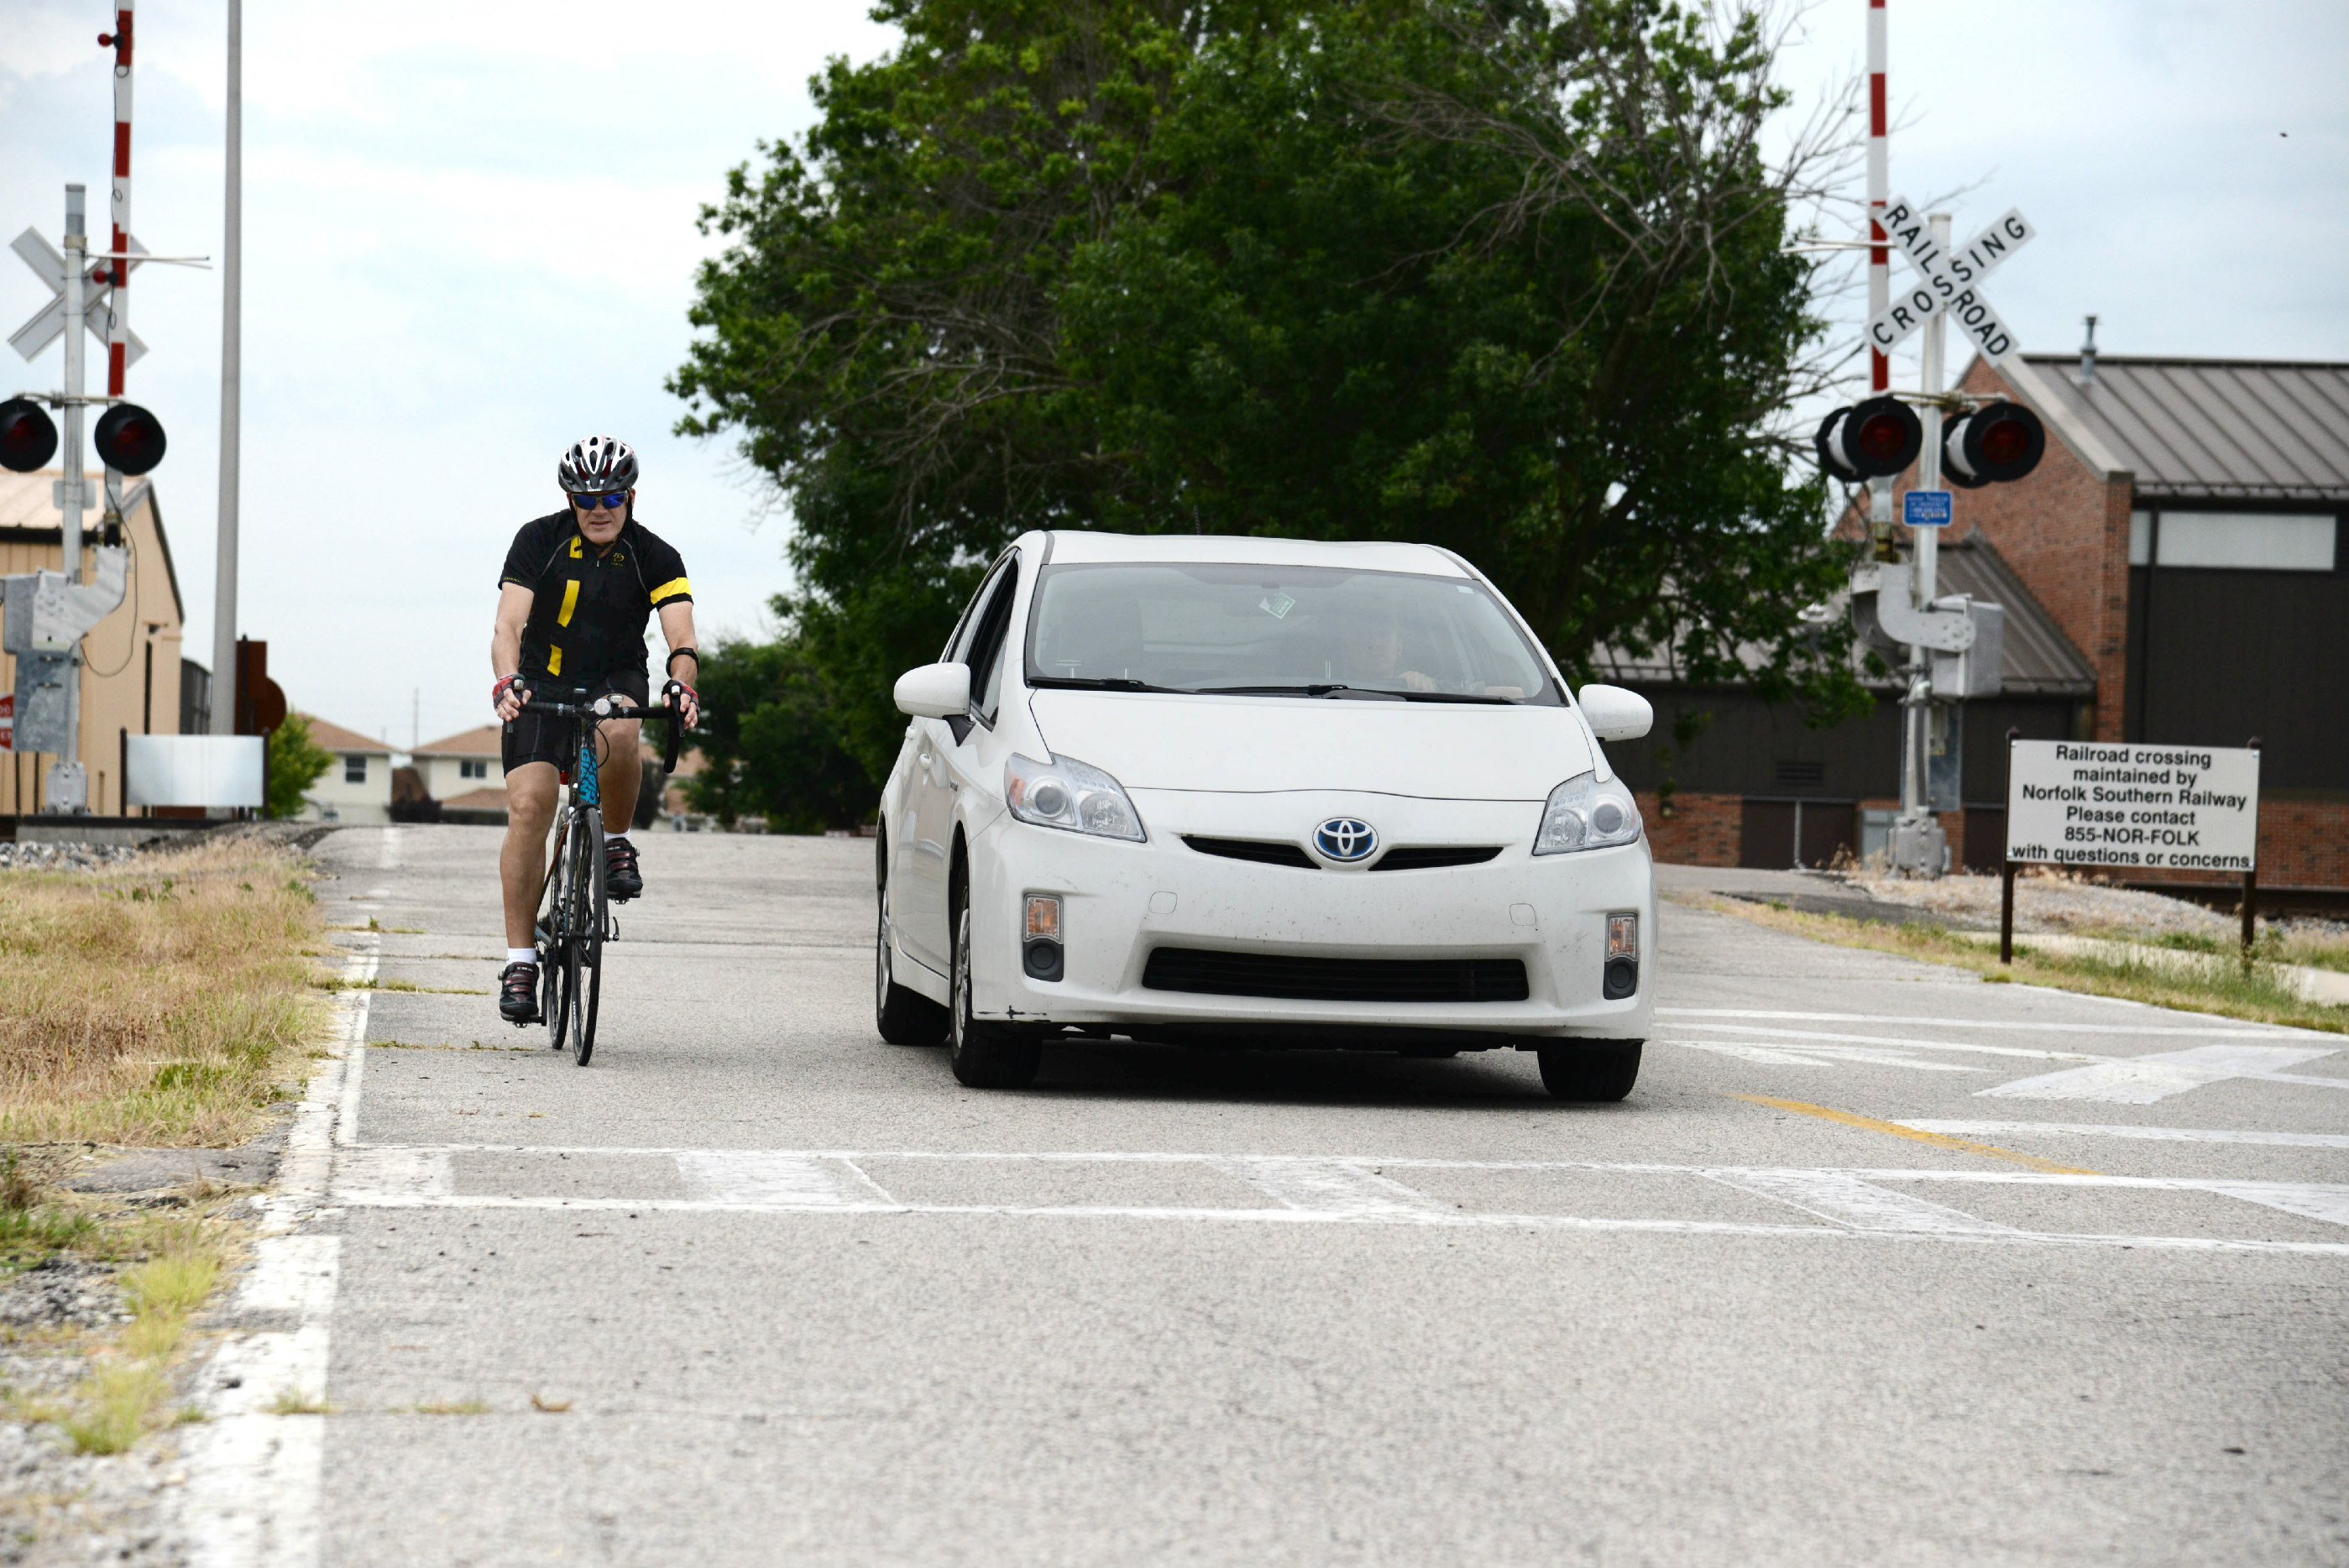 Drivers, cyclists responsible for each others' safety